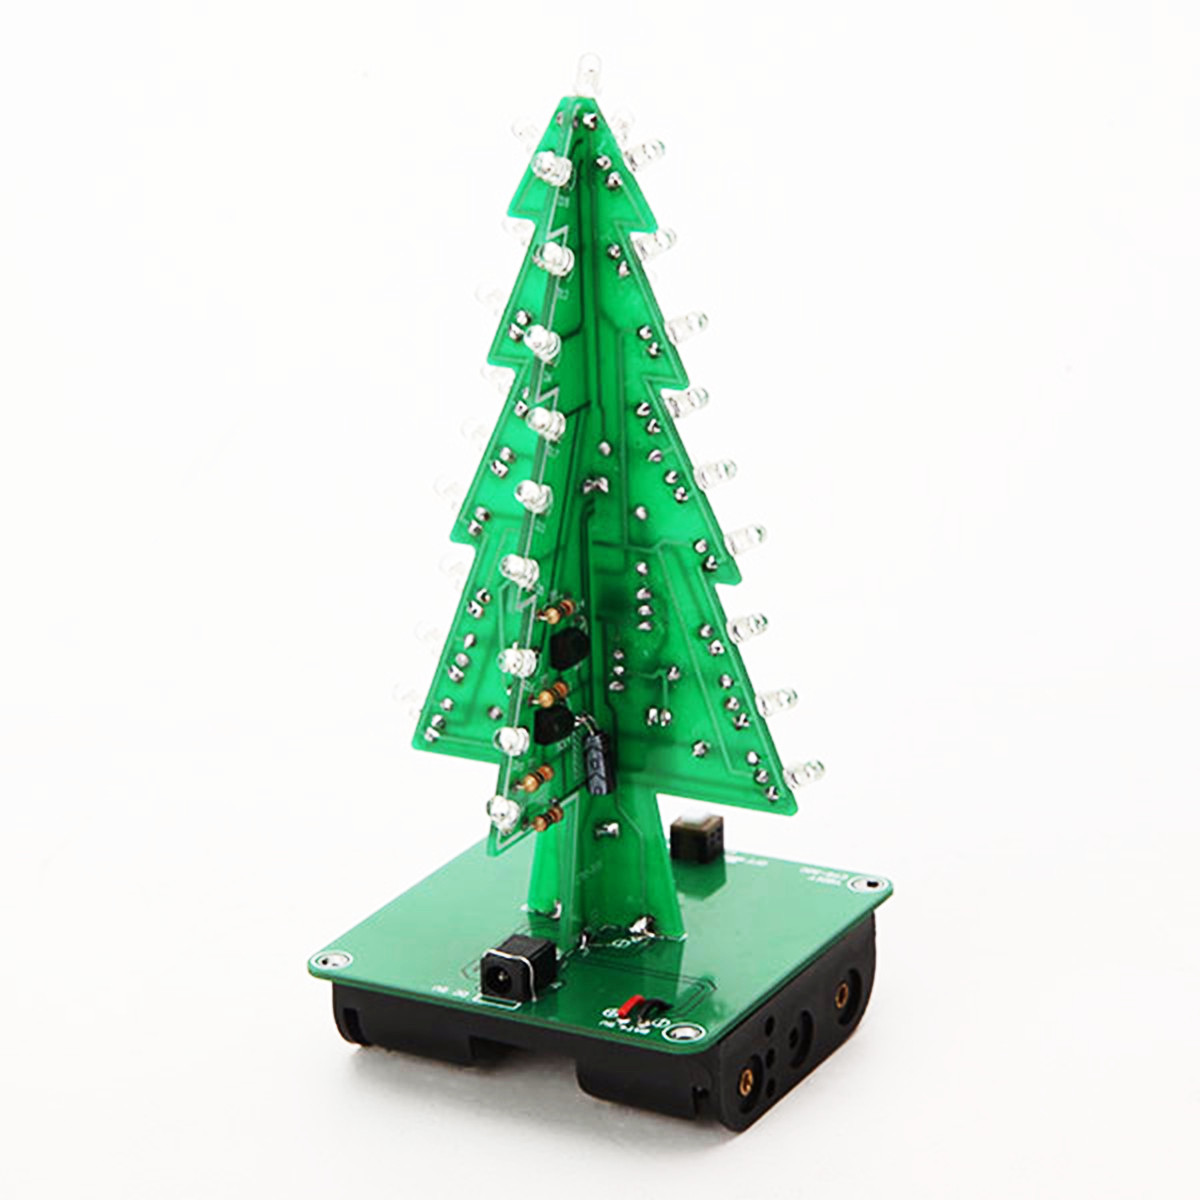 Assembled Christmas Tree LED Flash Module 3D LED Flash Light Device